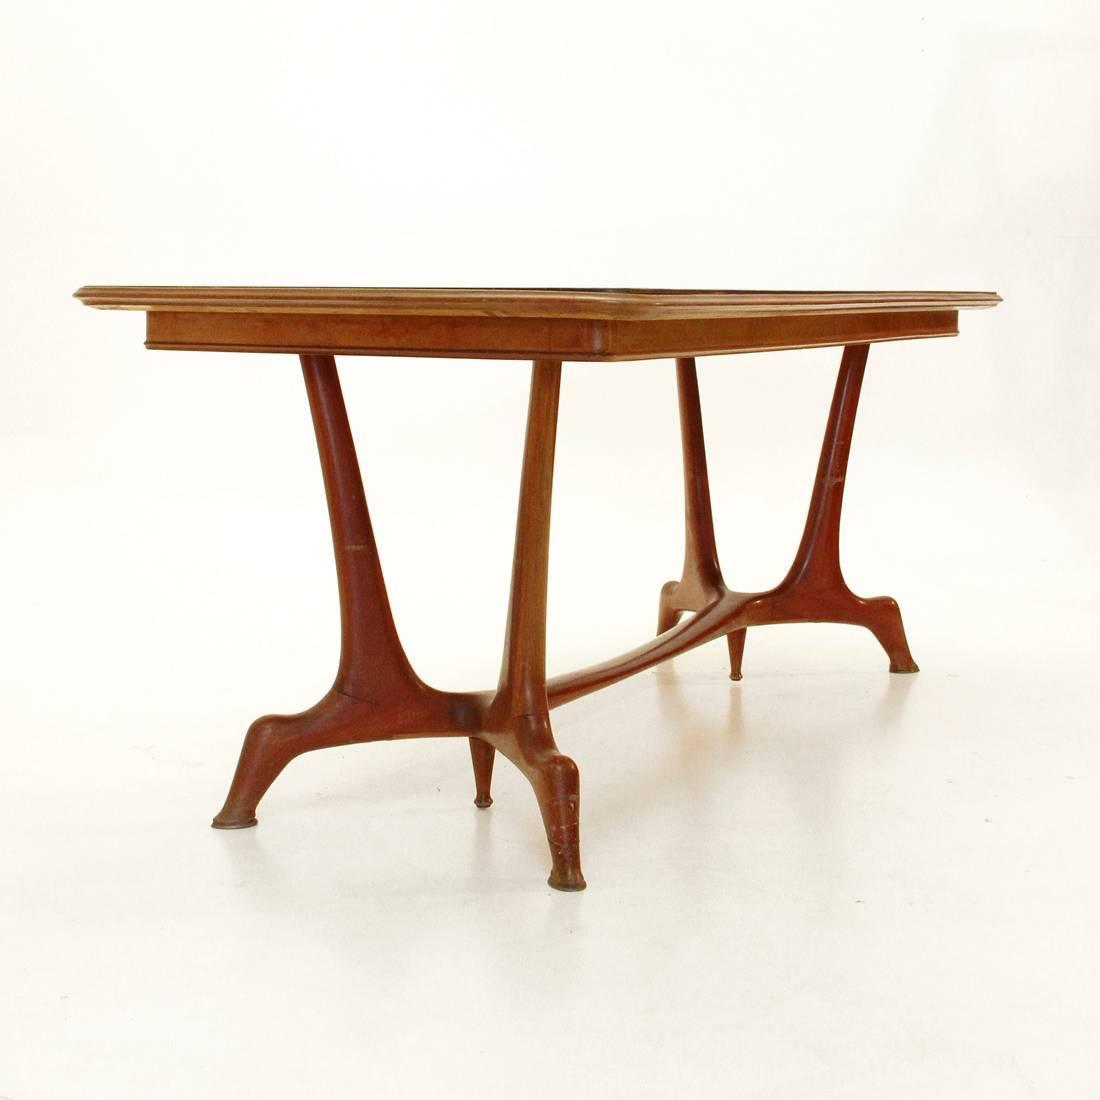 Mid century italian dining table 1950s at 1stdibs for Italian dining table